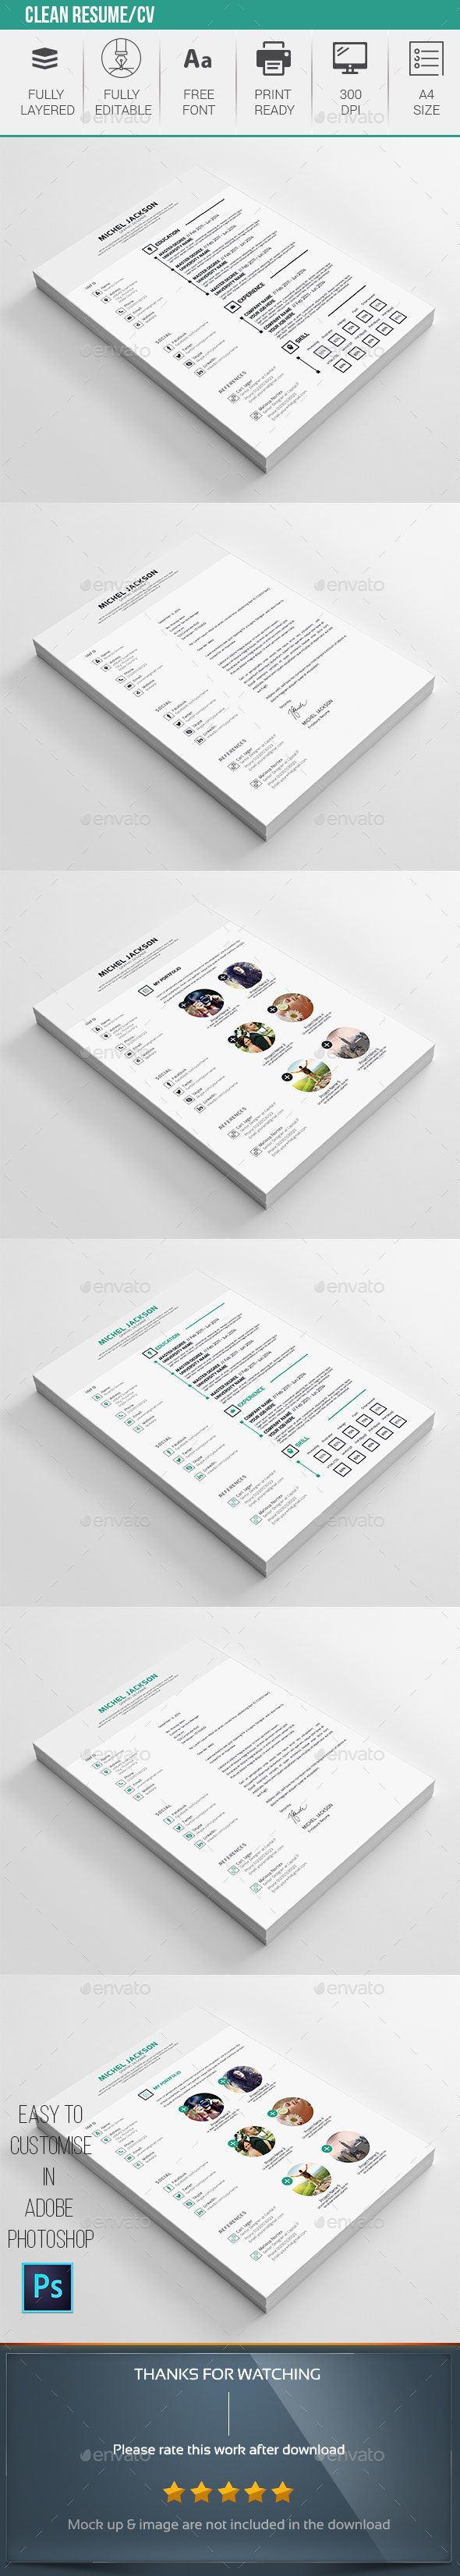 Clean Resume Download%0A Clean Resume Download Clean Resume CV Template Resumes Stationery Download  here https